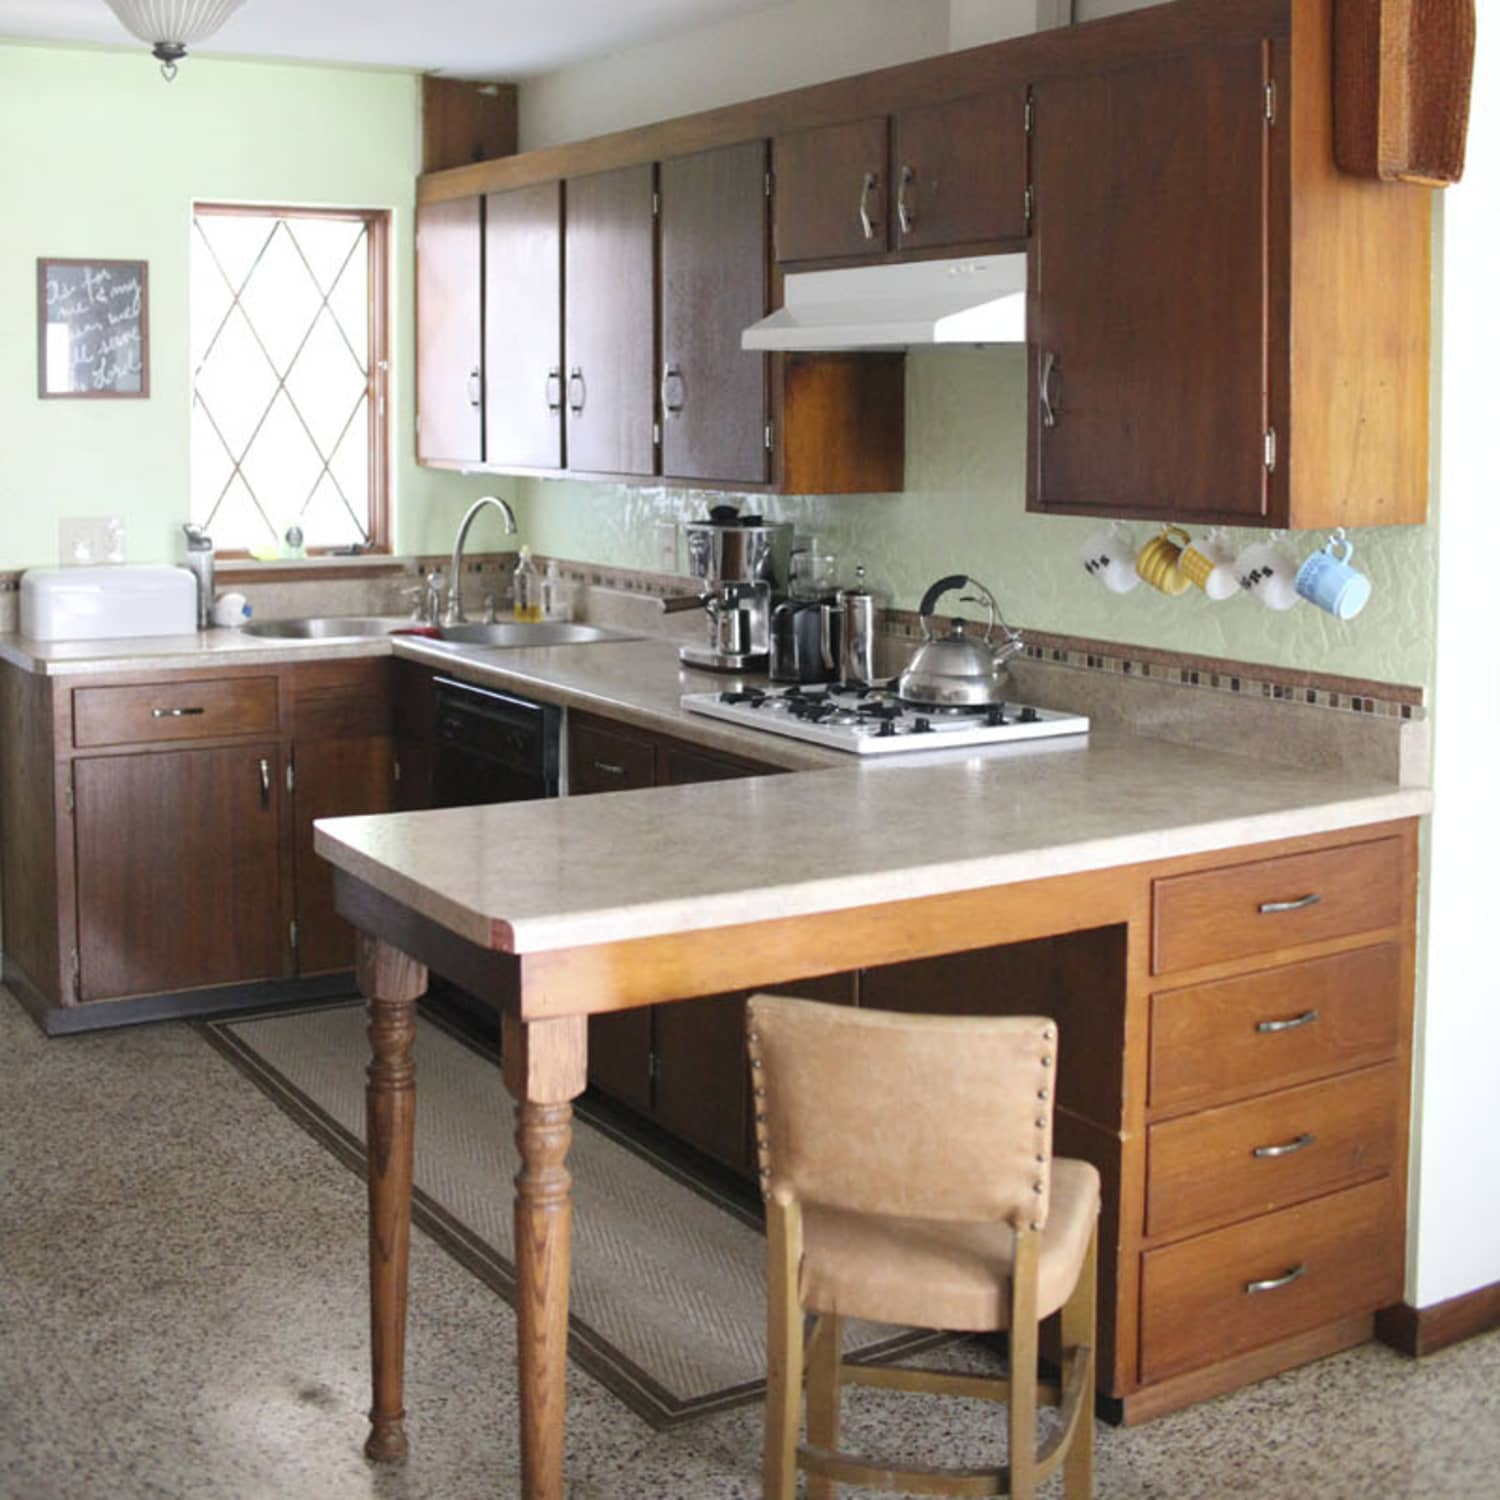 Real World Programs In Kitchen Cabinets Explained